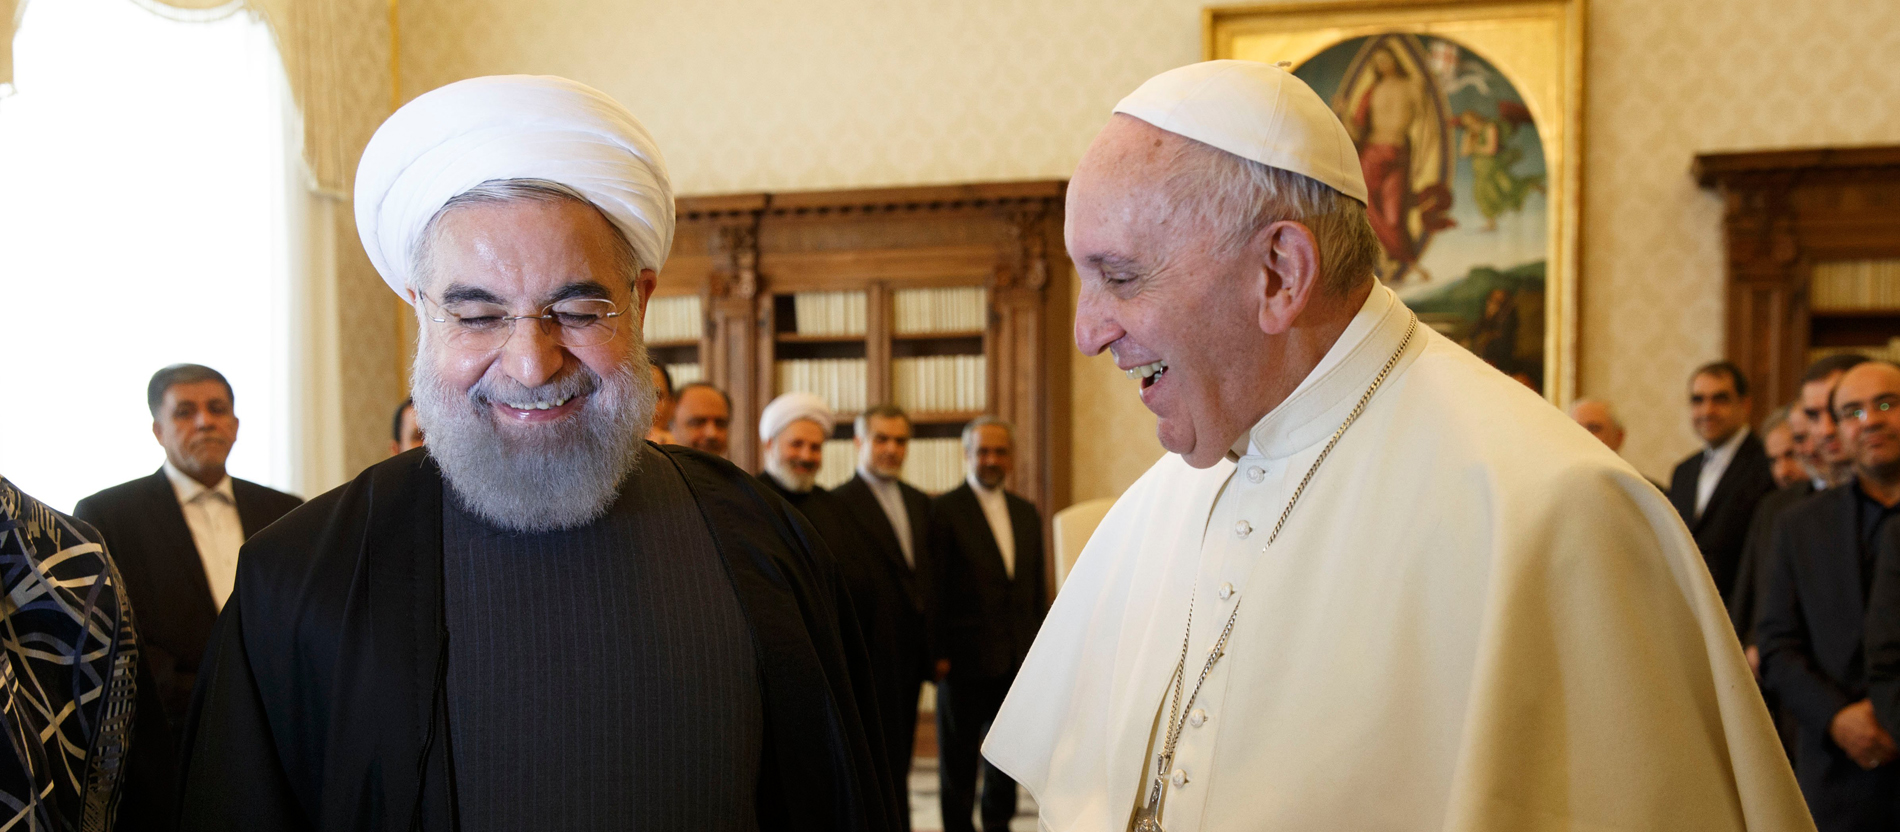 Papst Franziskus empfing den Präsidenten der Islamischen Republik Iran, Hassan Ruhani, am 26. Januar 2016 im Vatikan, in einer Privataudienz.